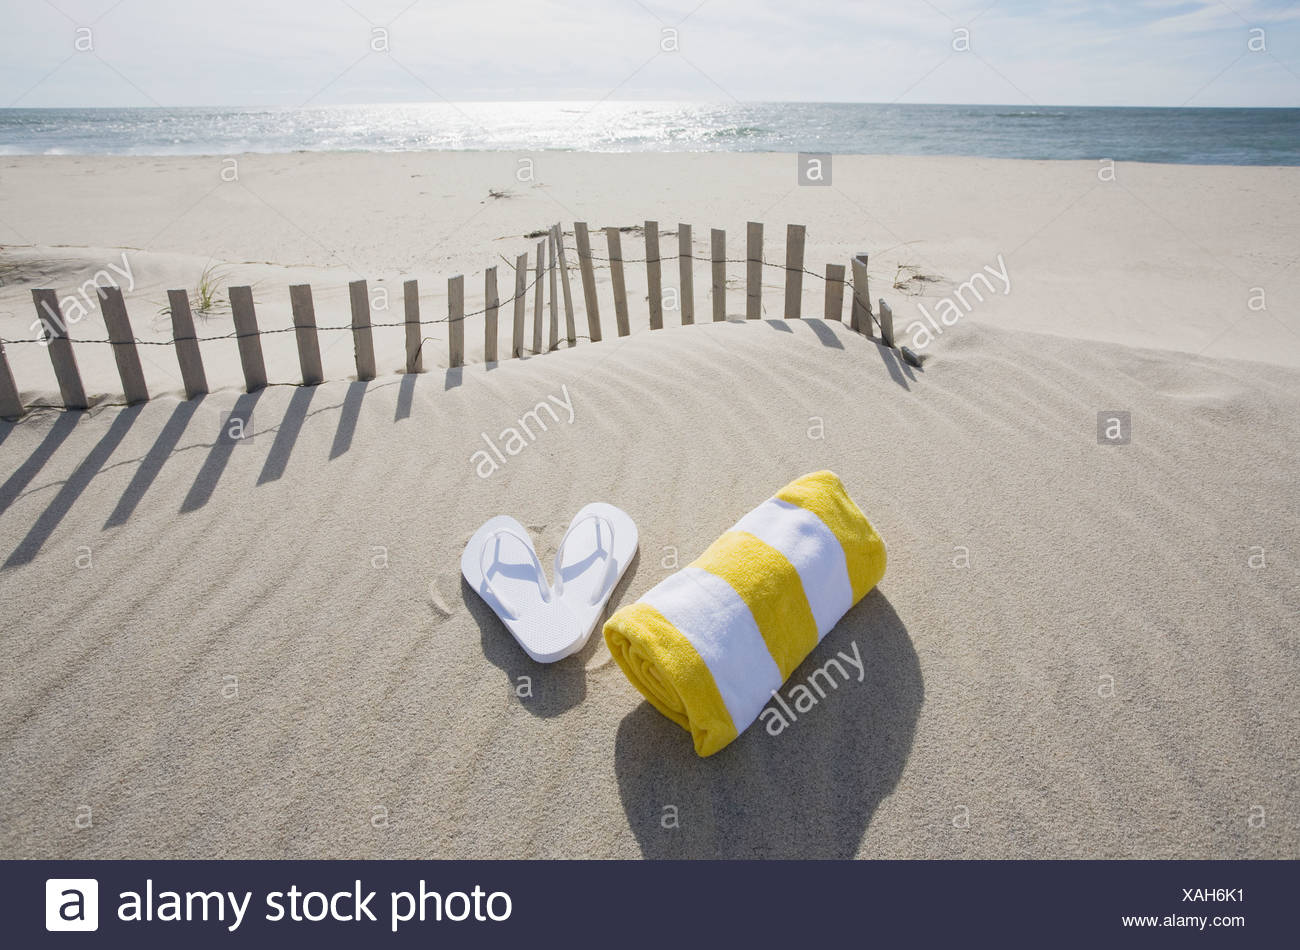 412a9757f3bd5 Flip Flops And Towel Stockfotos   Flip Flops And Towel Bilder - Alamy